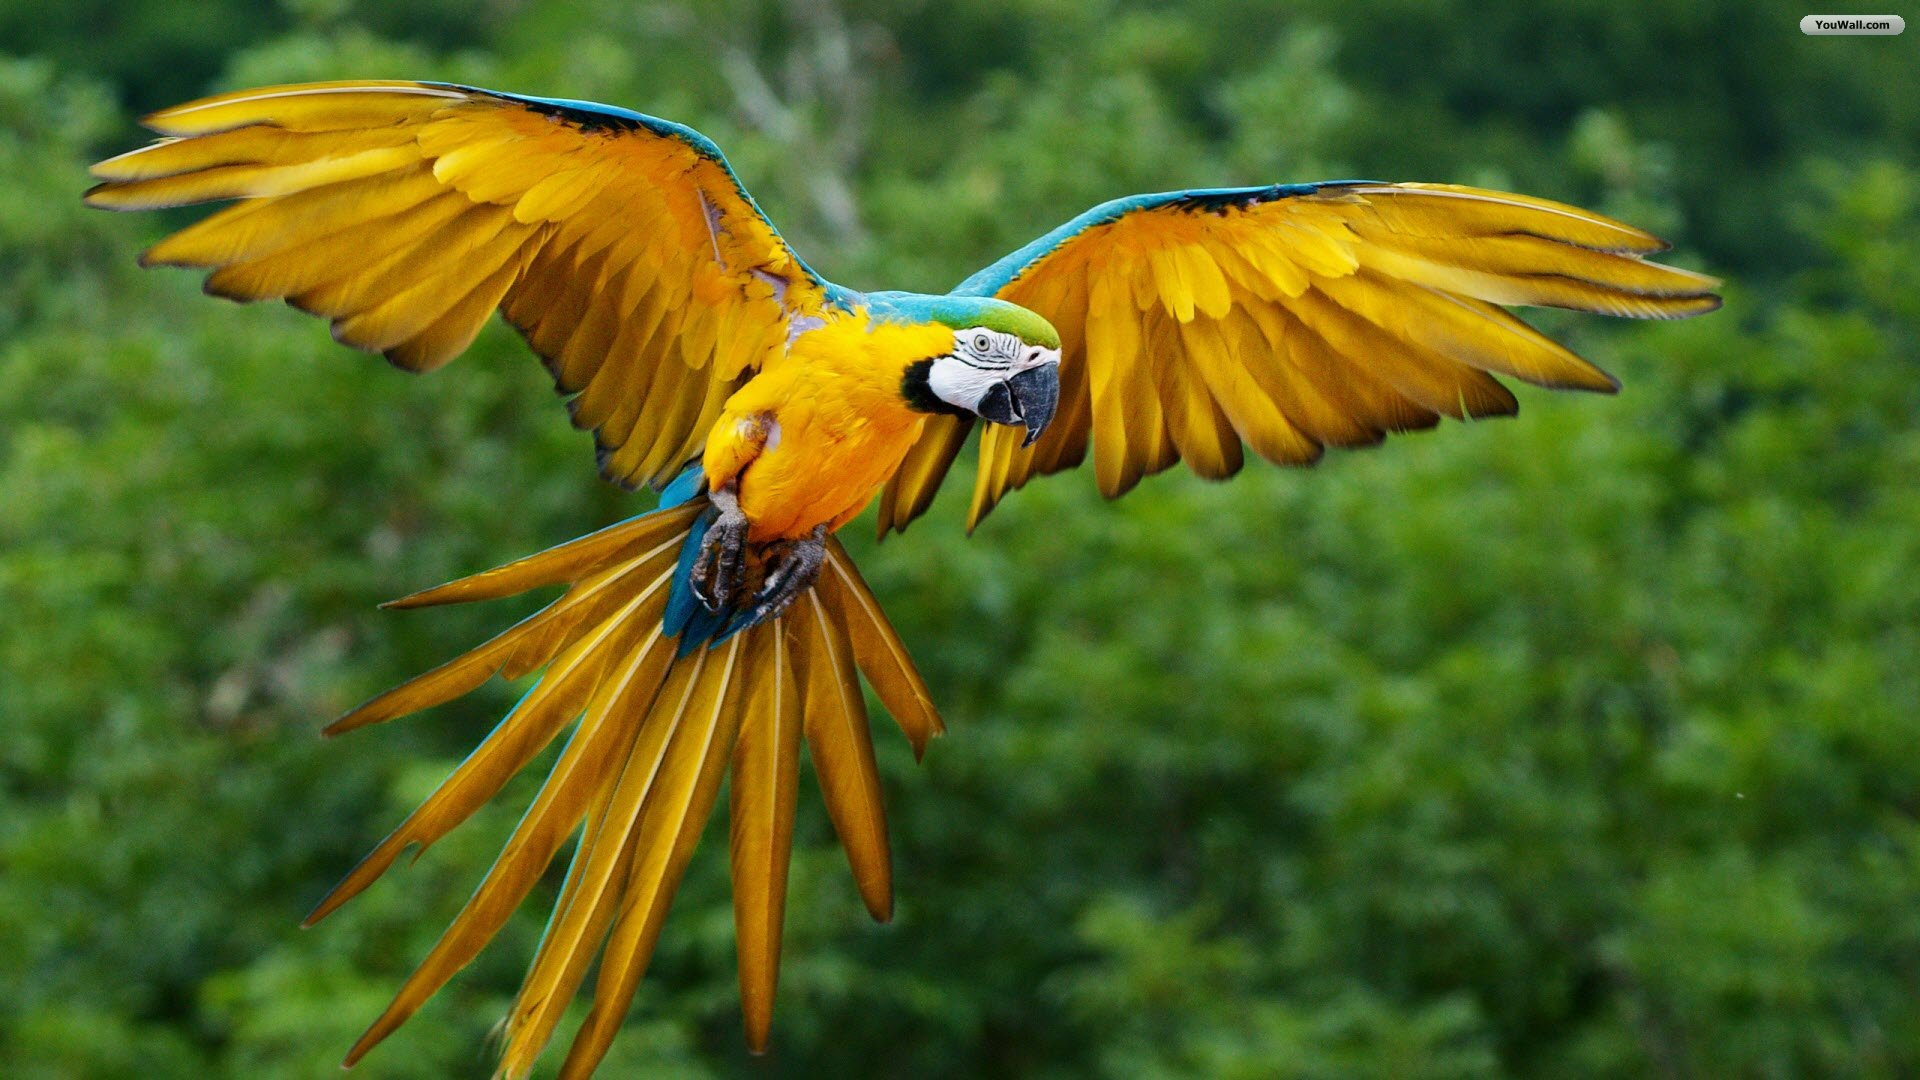 Flying-Yellow-Parrot-HD-Wallpaper-of-birds